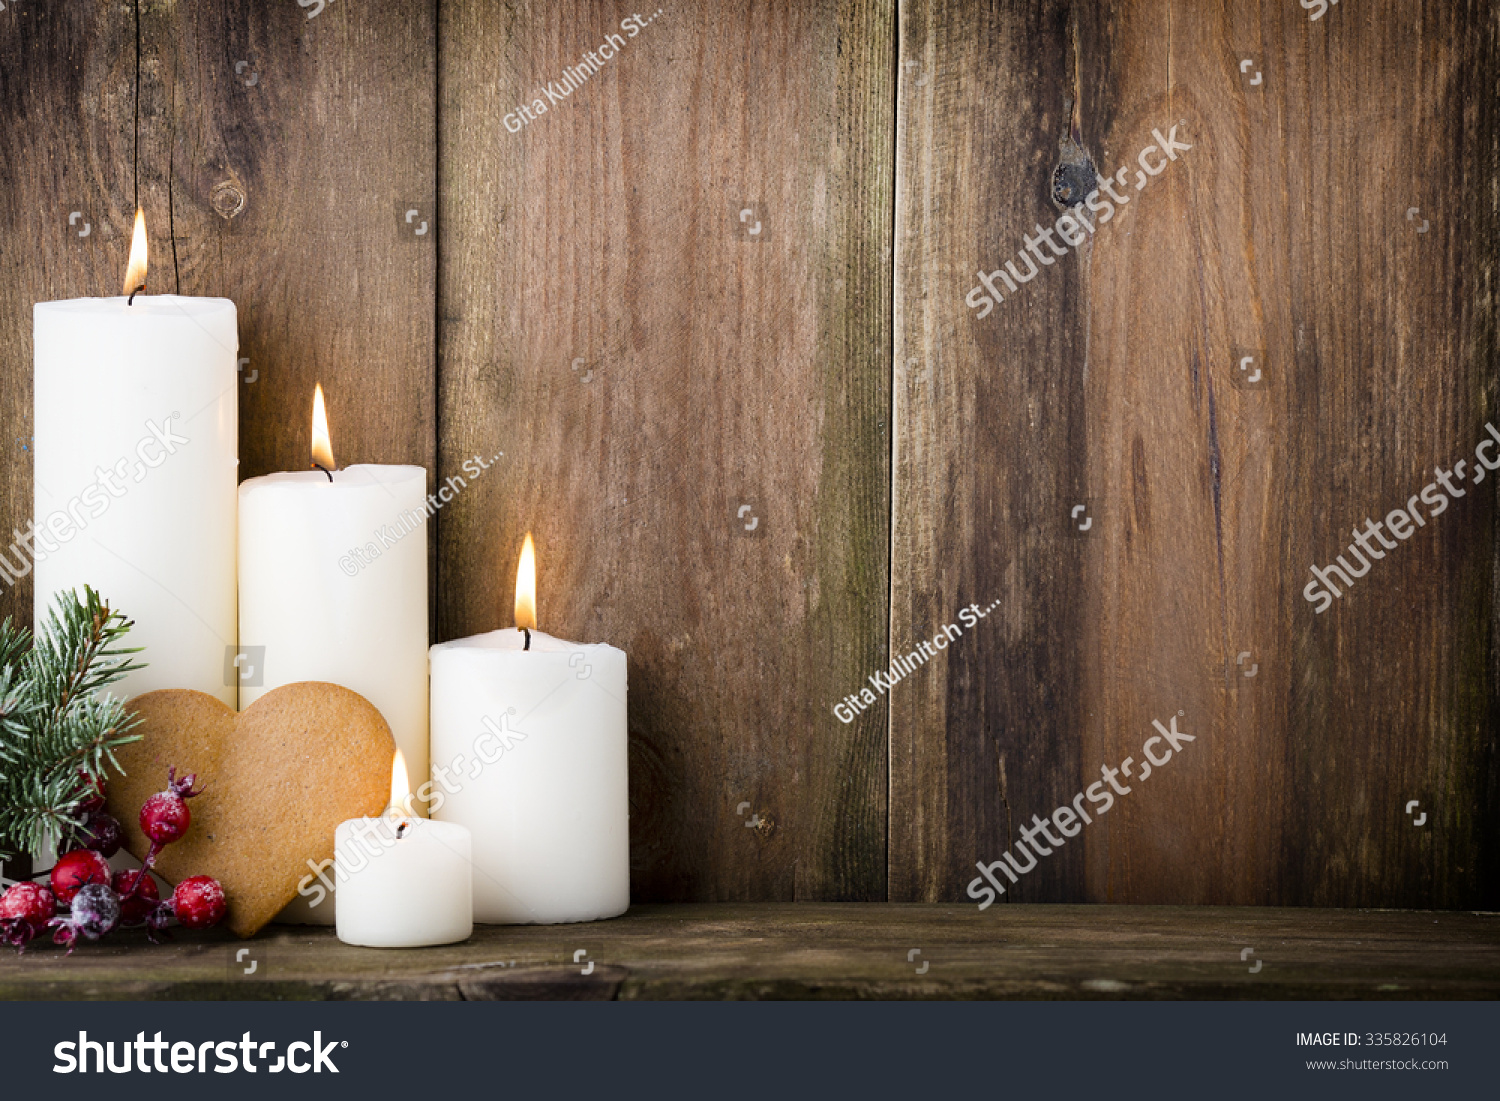 Christmas candles and lights christmas background stock for Large outdoor christmas candles